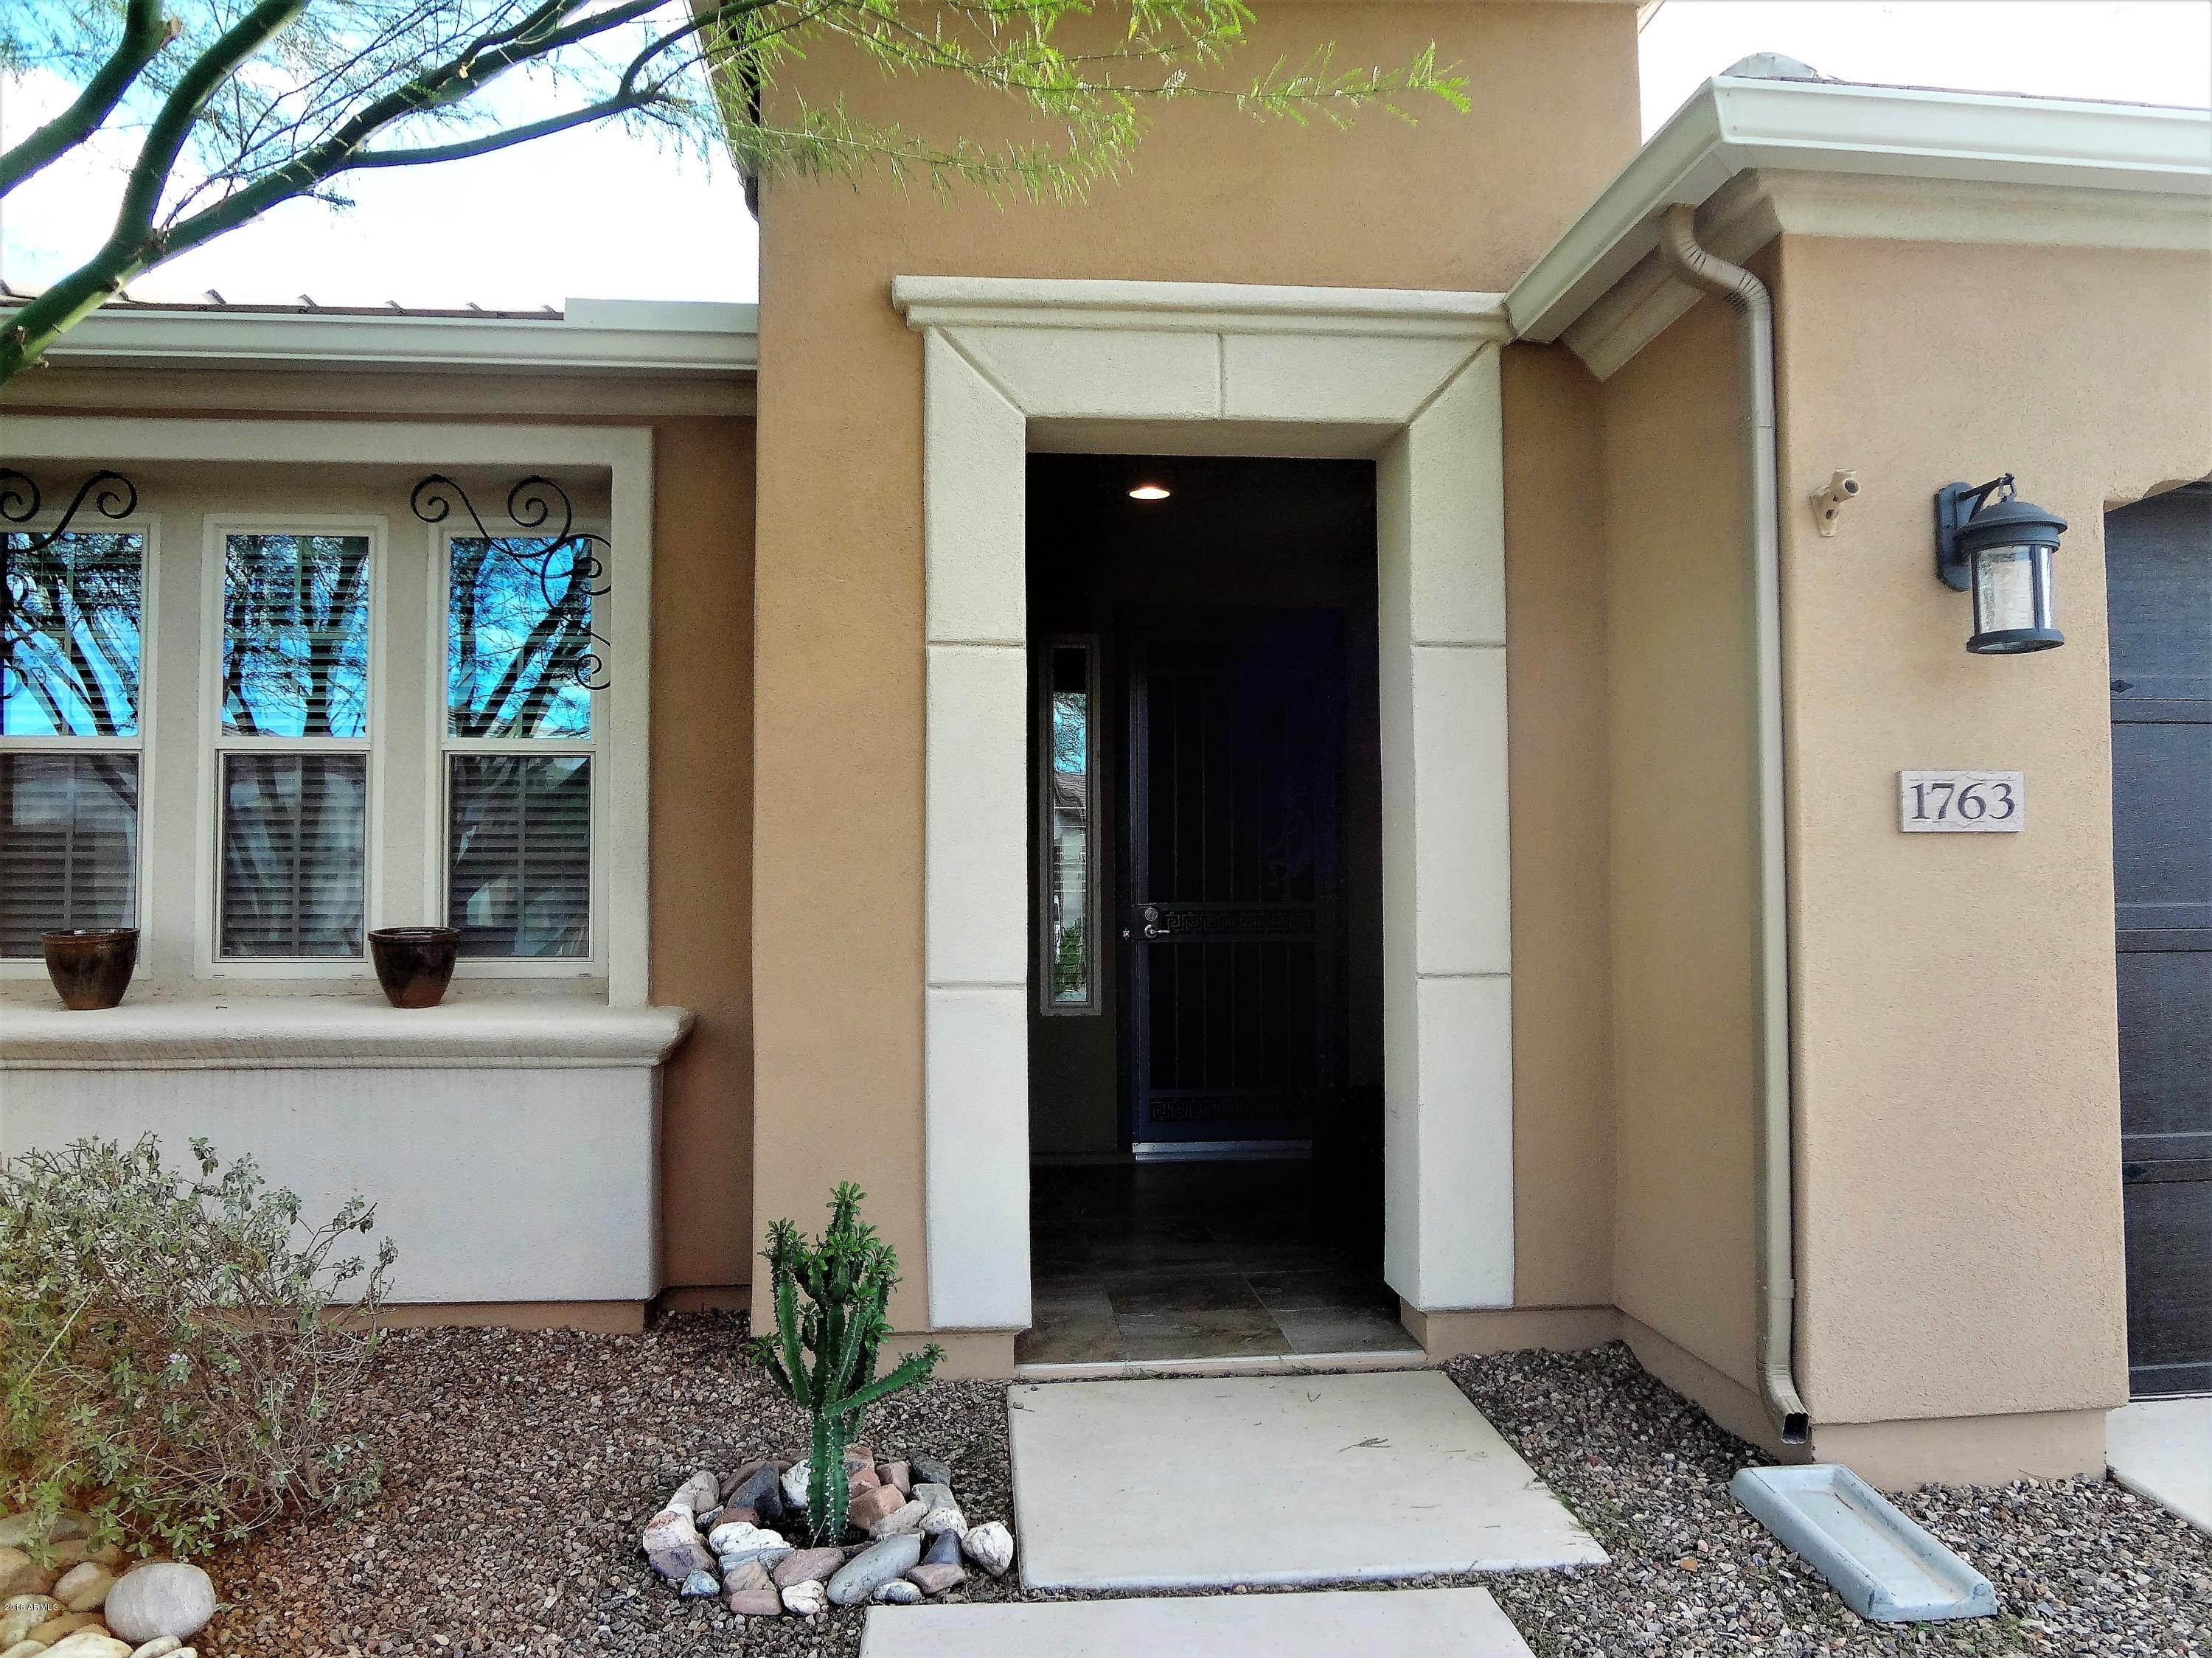 Photo for 1763 E Verde Boulevard, San Tan Valley, AZ 85140 (MLS # 5832519)